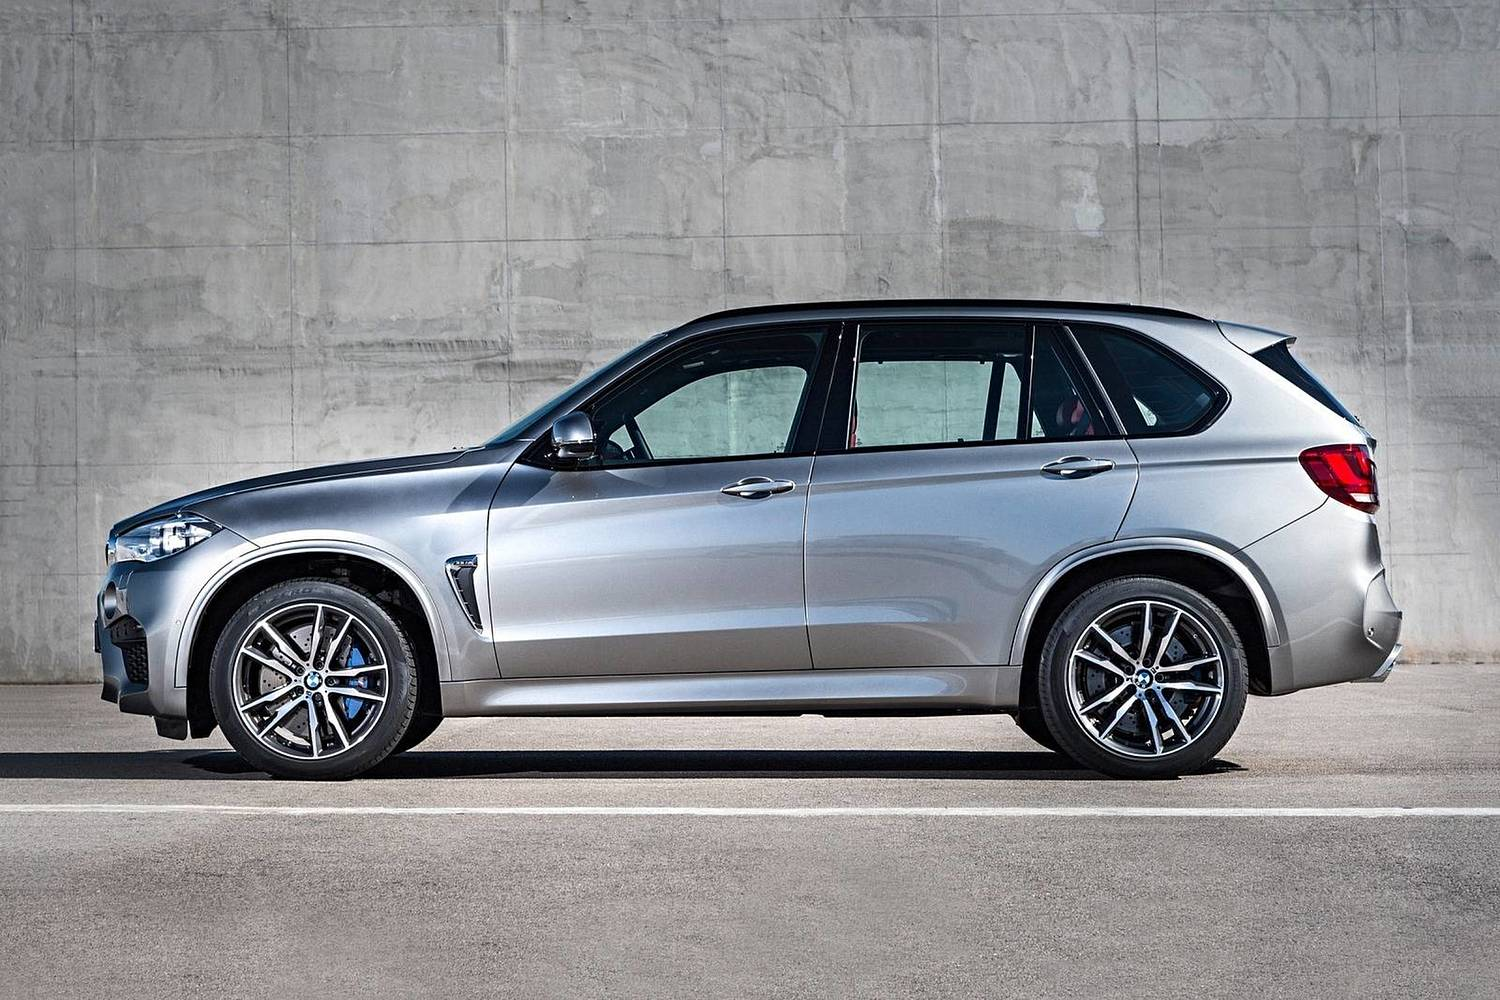 BMW X5 M 4dr SUV Exterior (2017 model year shown)